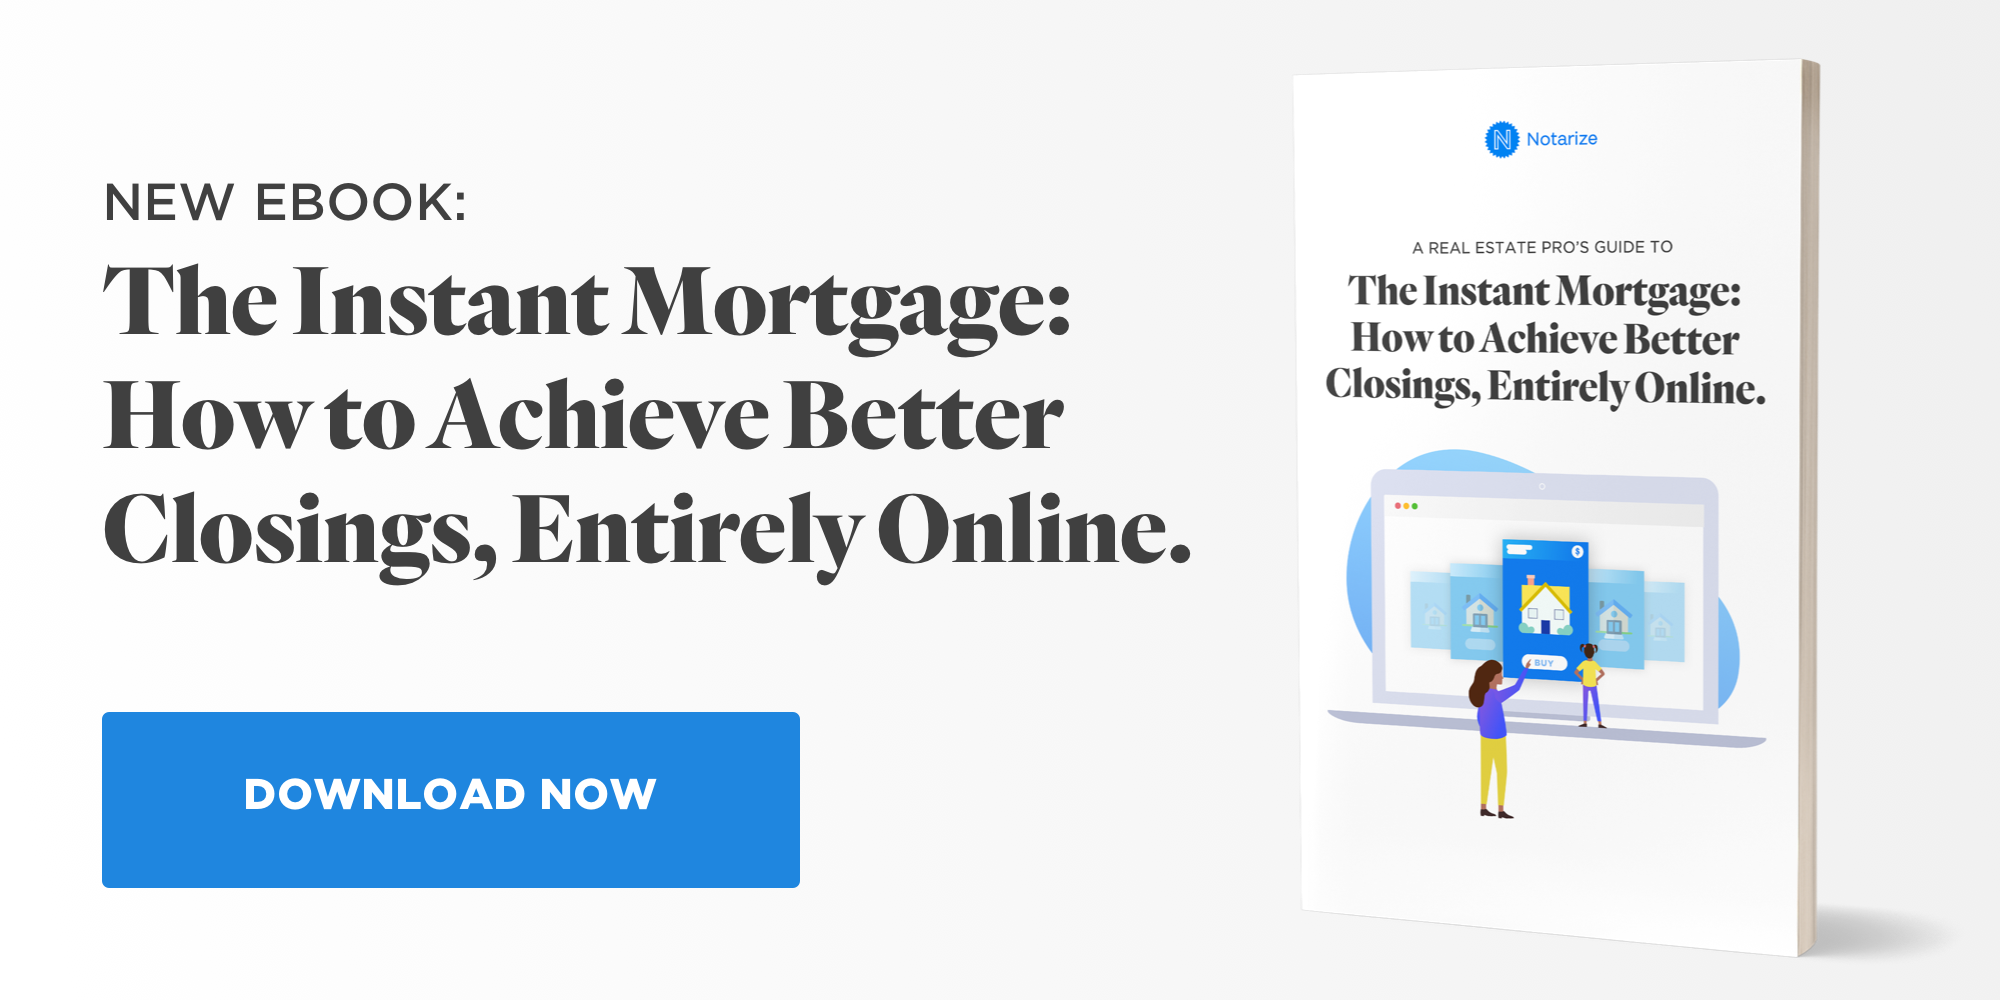 New eBook on The Instant Mortgage: How to Achieve Better Closings, On-Demand